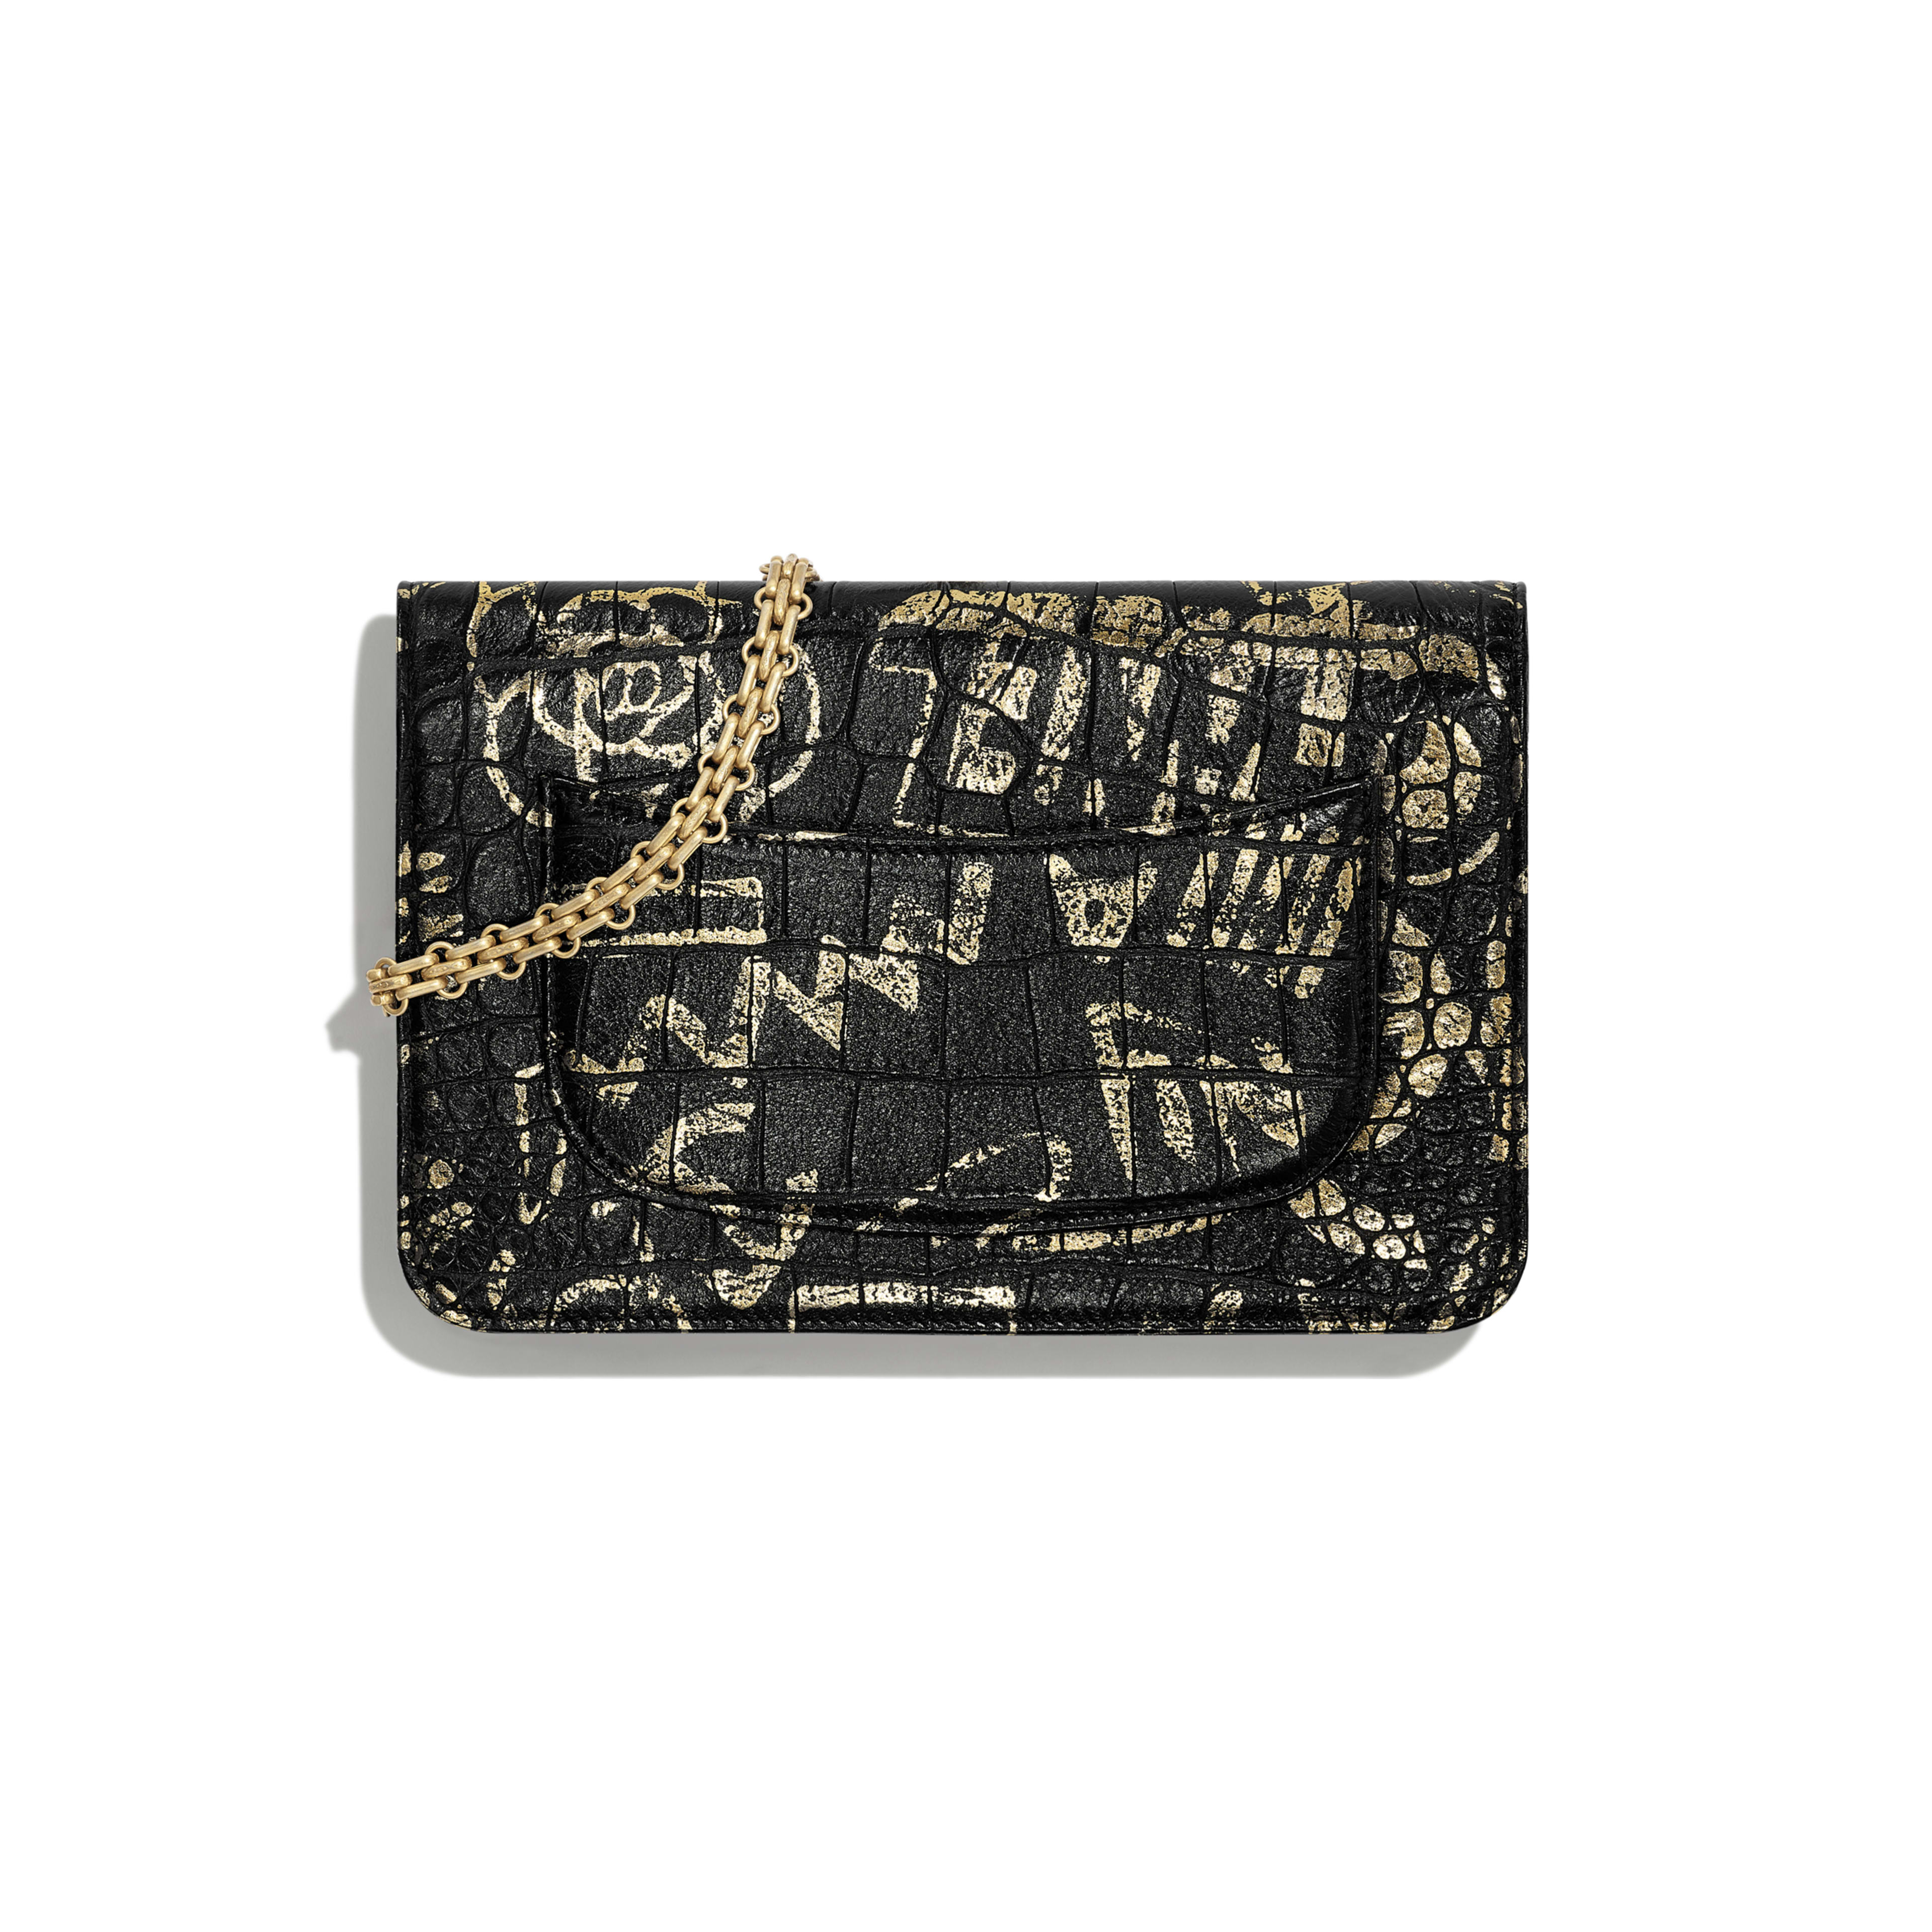 2.55 Wallet on Chain - Black & Gold - Crocodile Embossed Printed Leather & Gold-Tone Metal - Alternative view - see full sized version